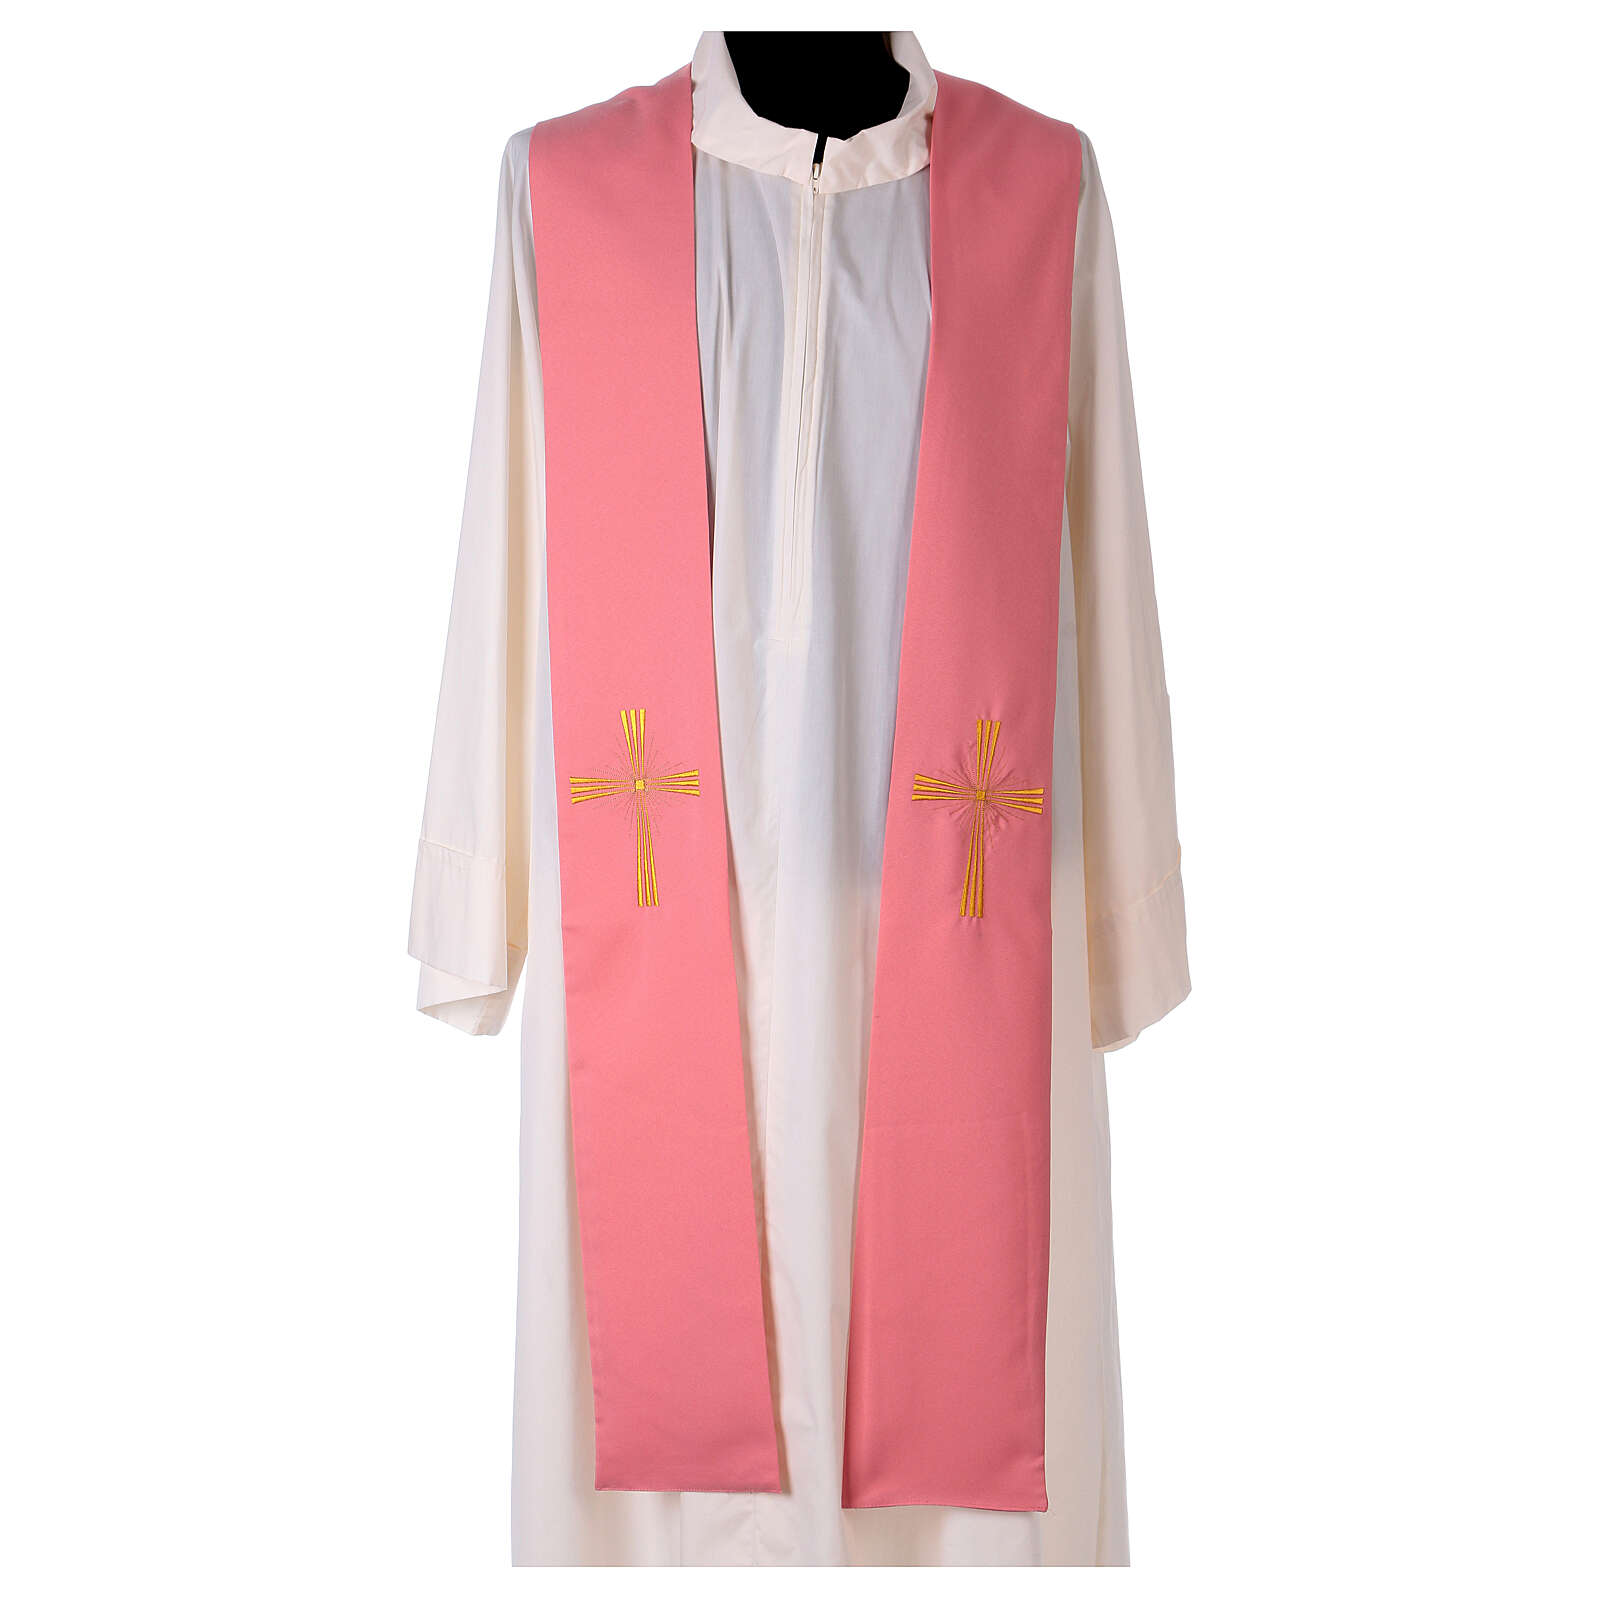 Stole machine embroidered with cross 100% polyester 4